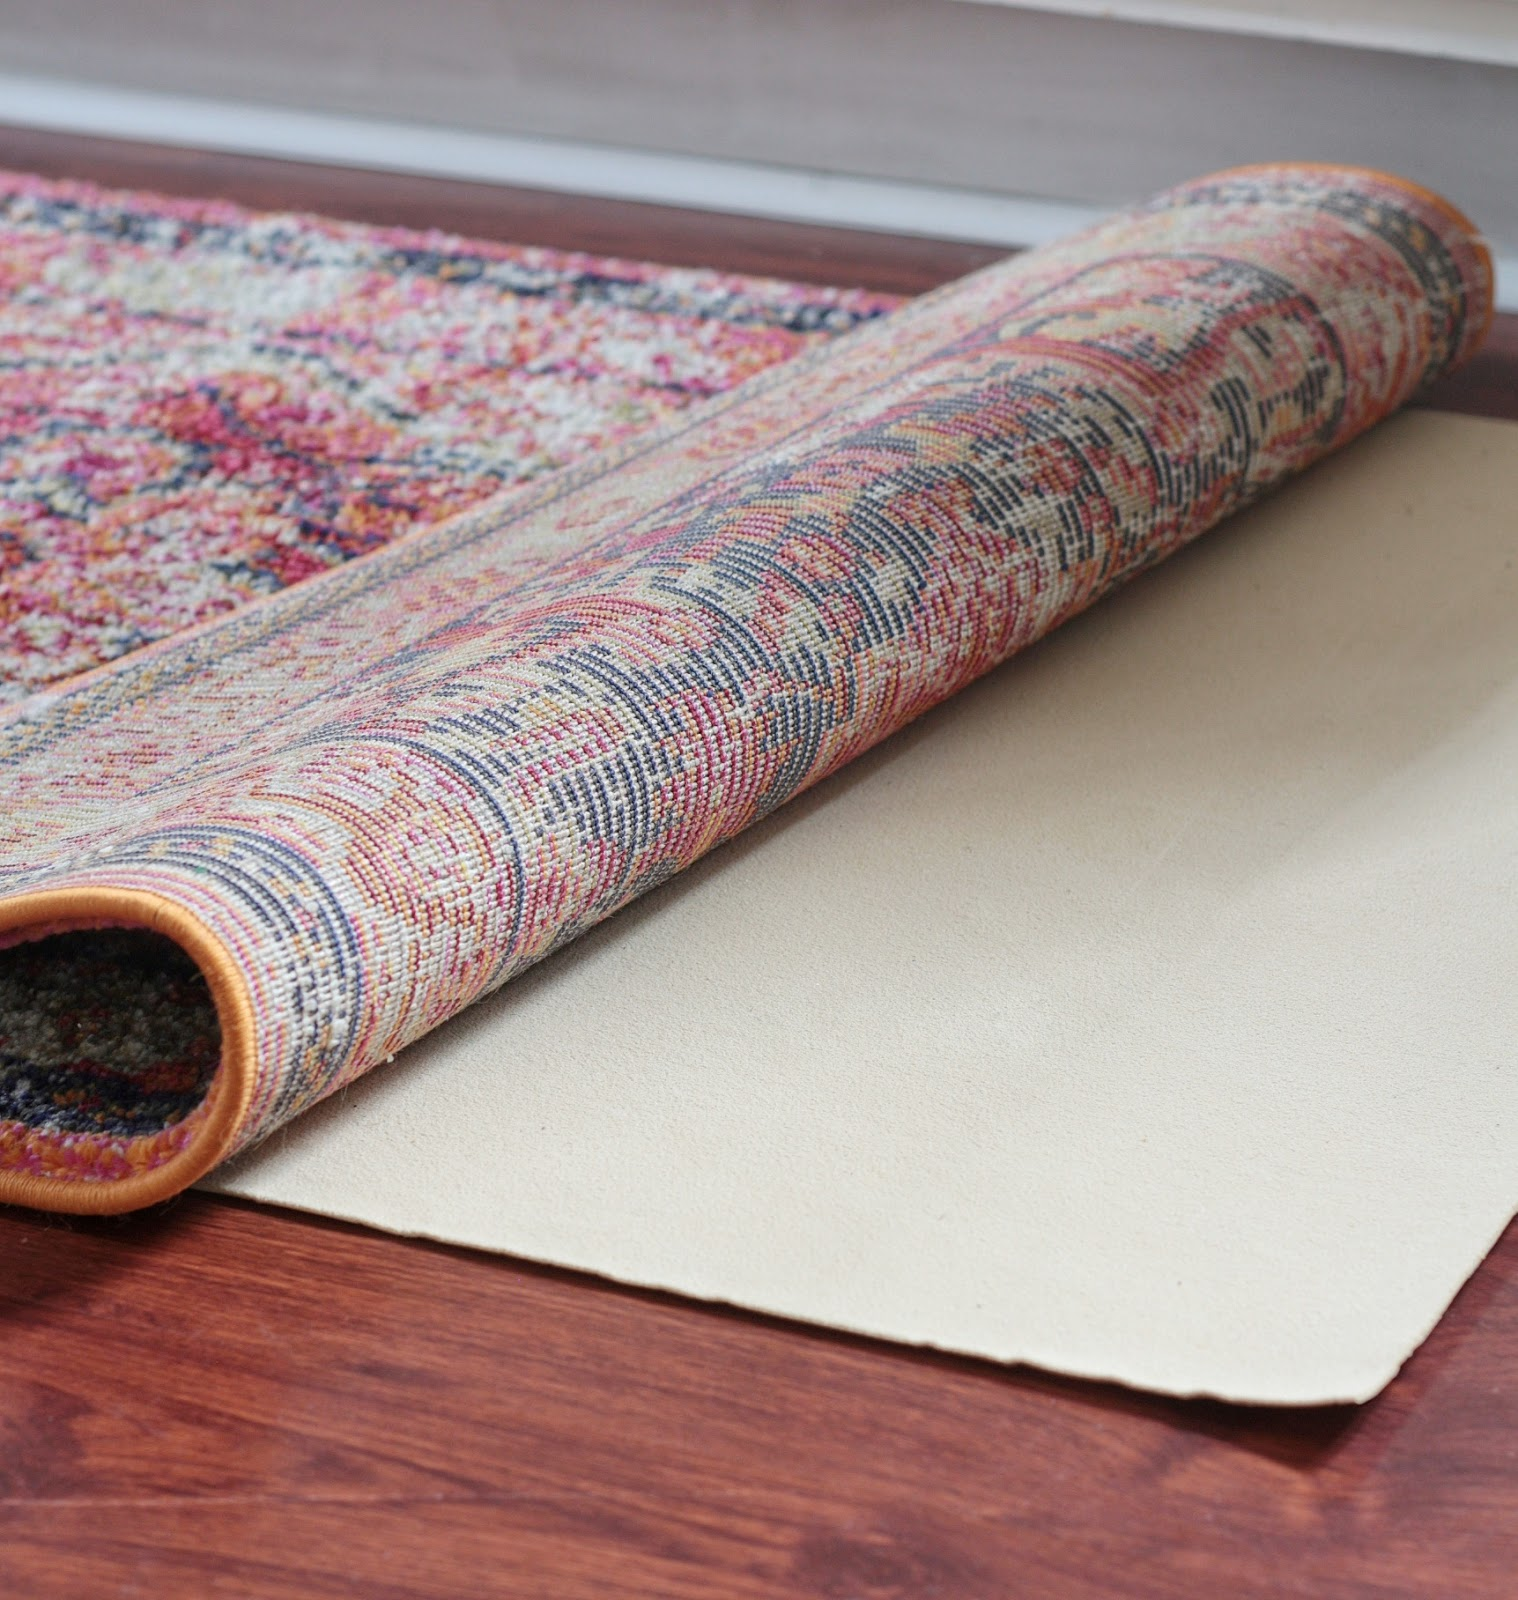 THE Rug Pad You NEED Under Your New Vintage Runner!  And a Giveaway!